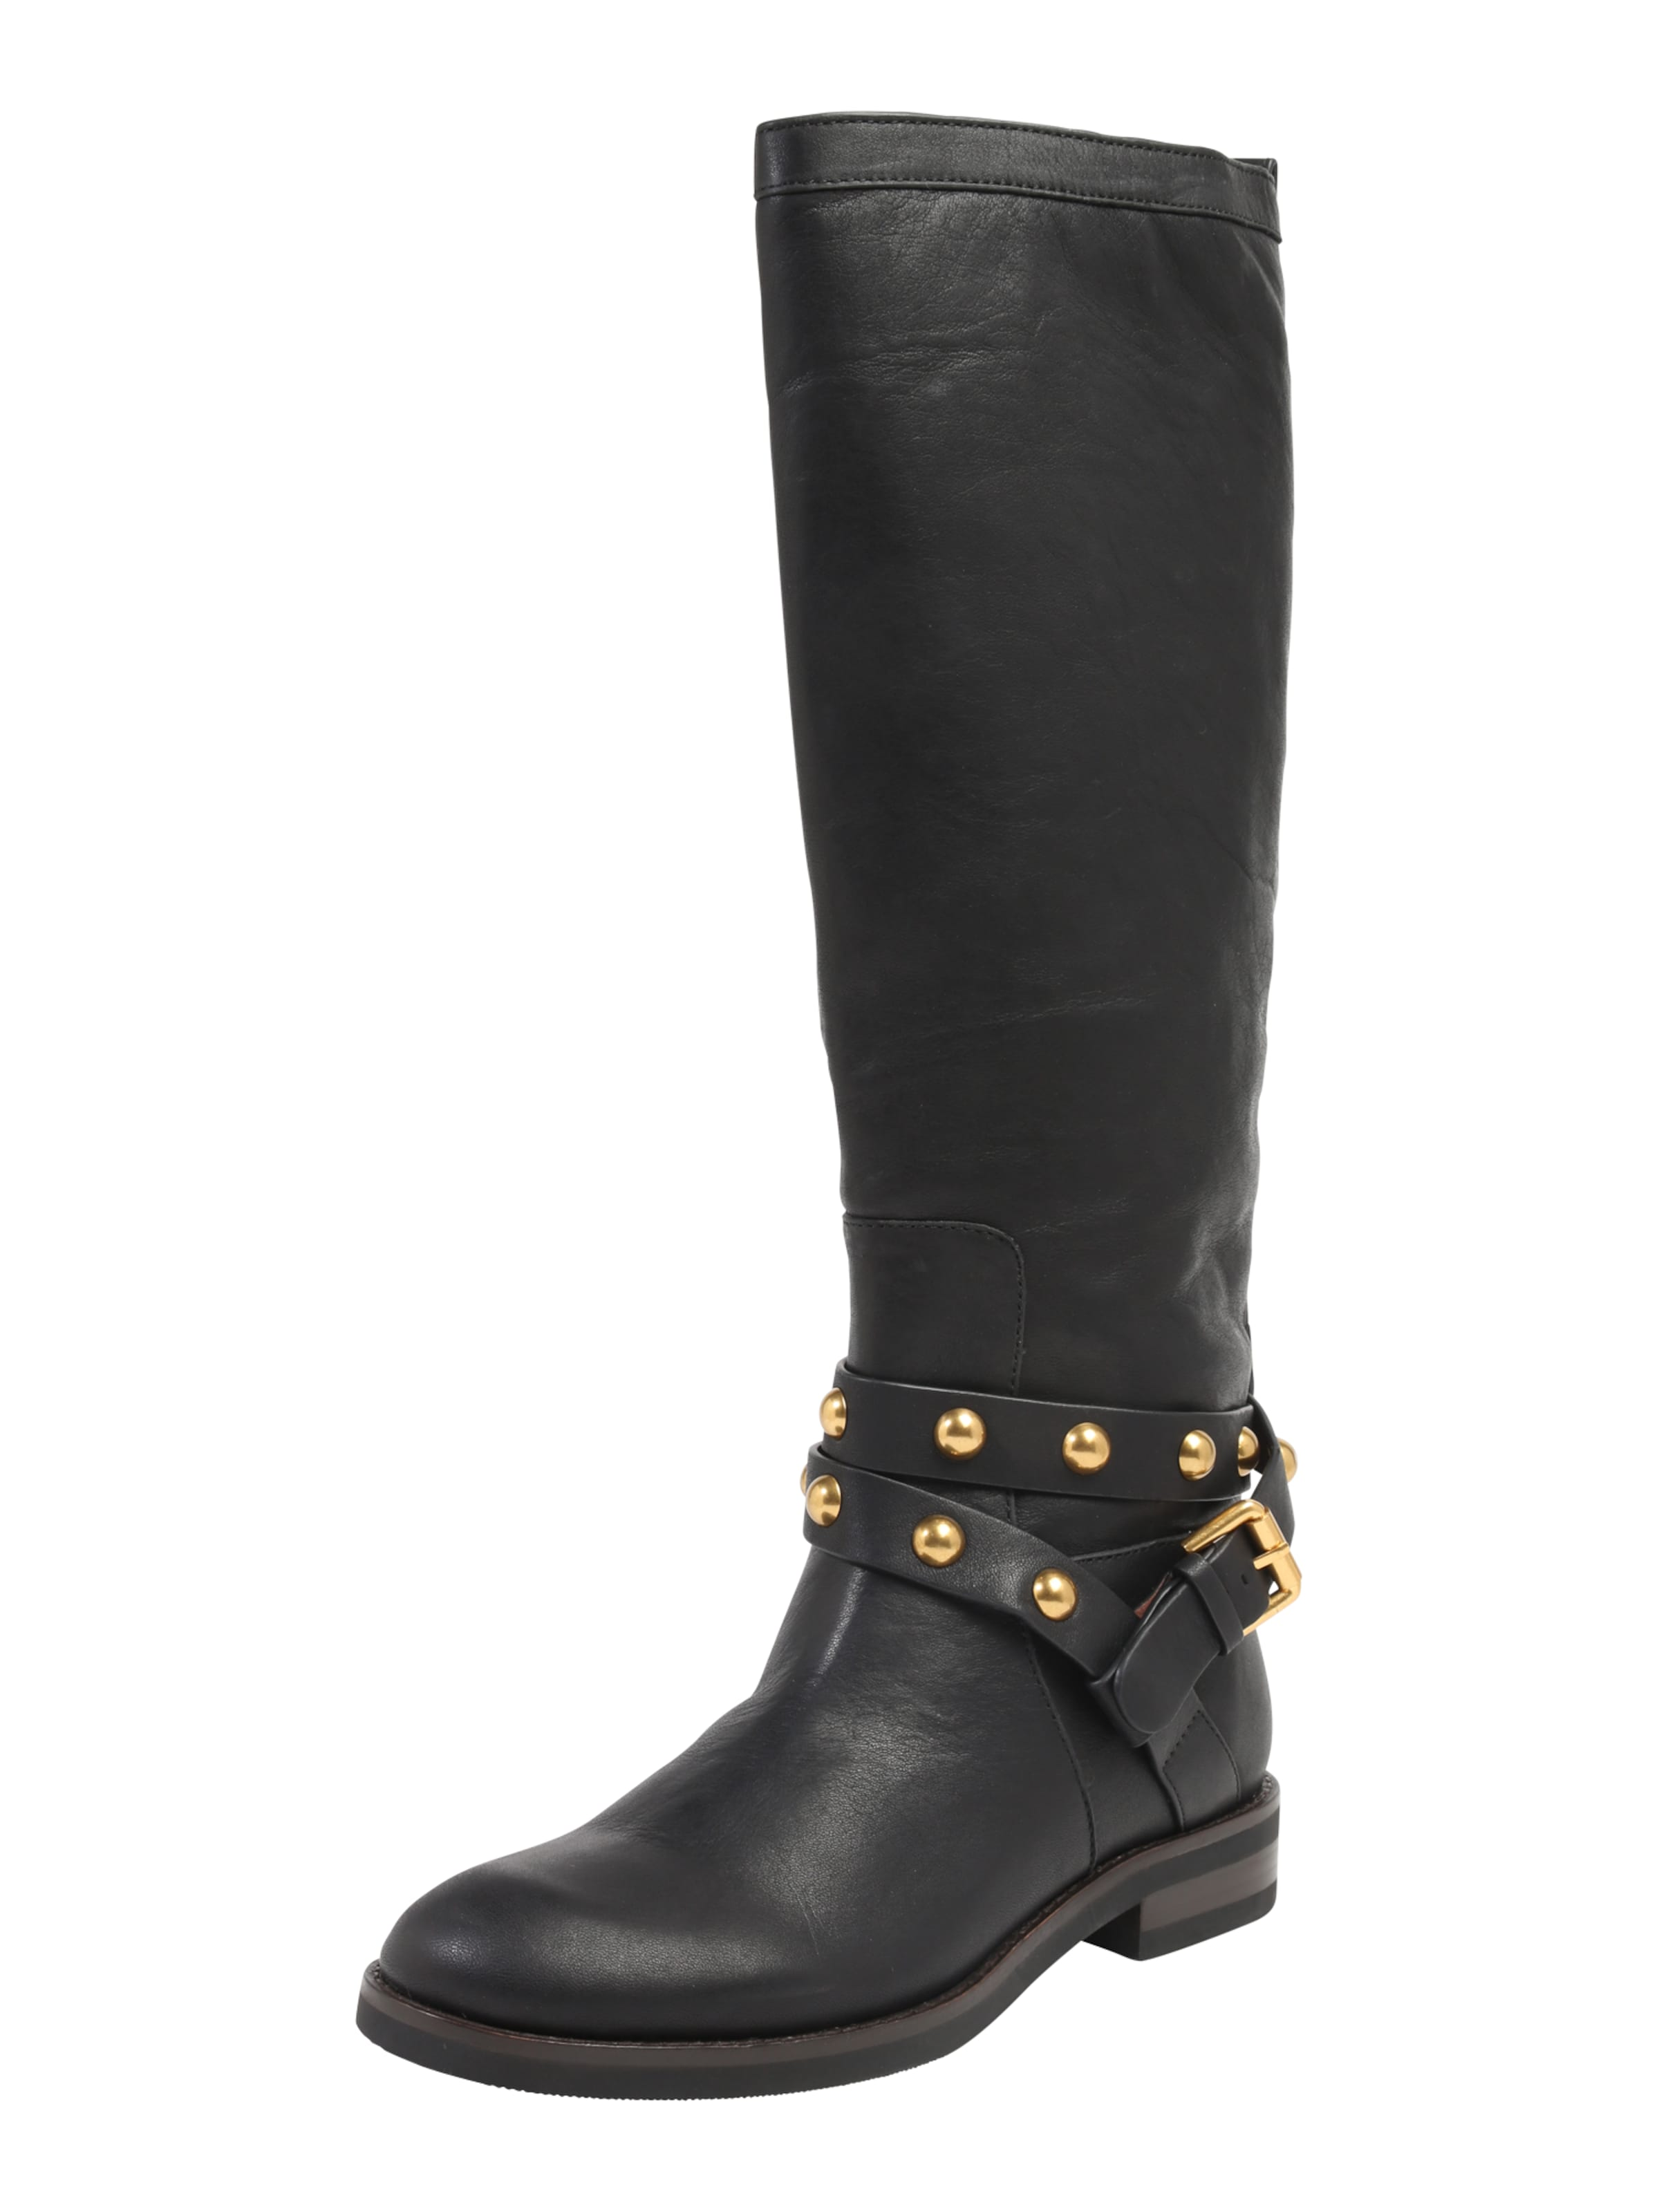 In See Stiefel Chloé Schwarz By 'sb33003a' rsdCQth